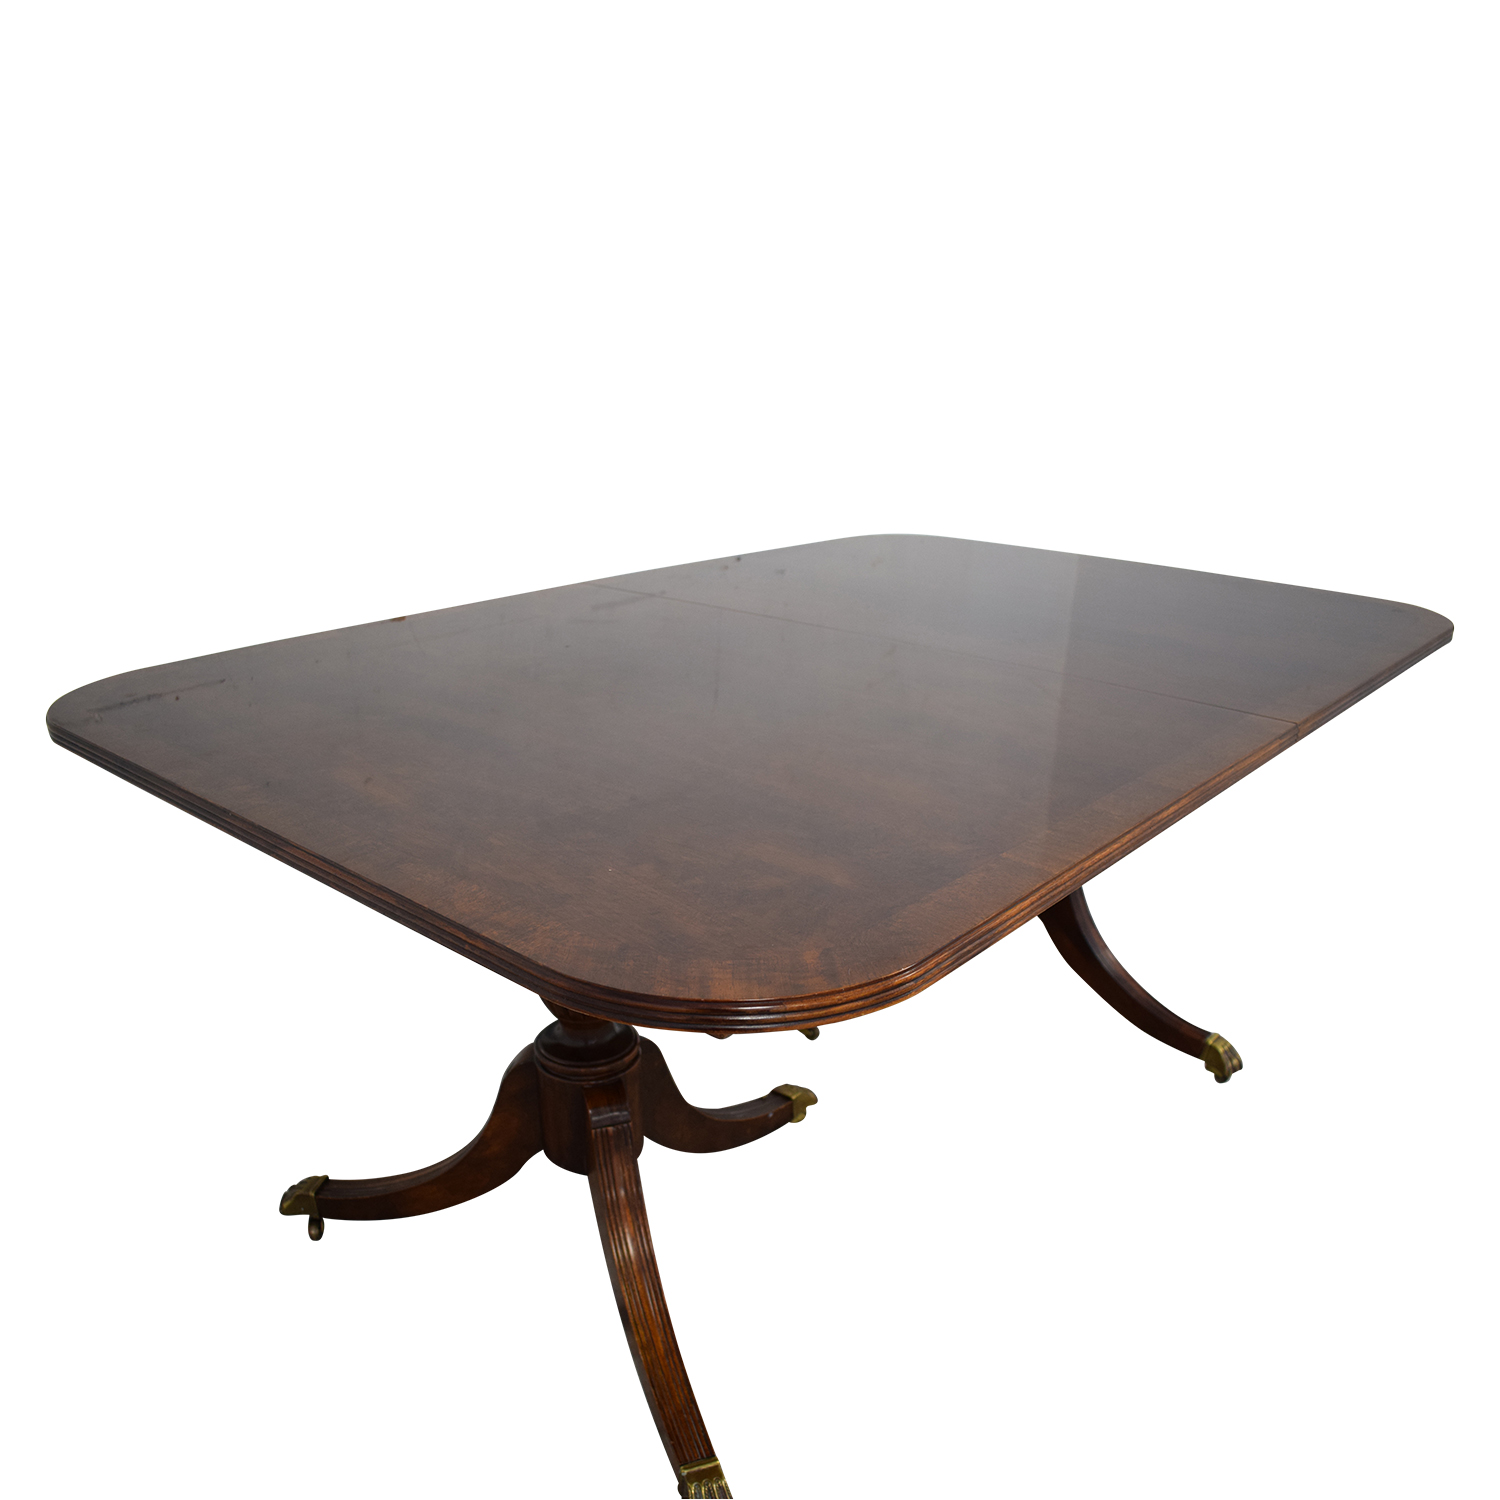 shop Thomasville Thomasville Extendable Dining Table online